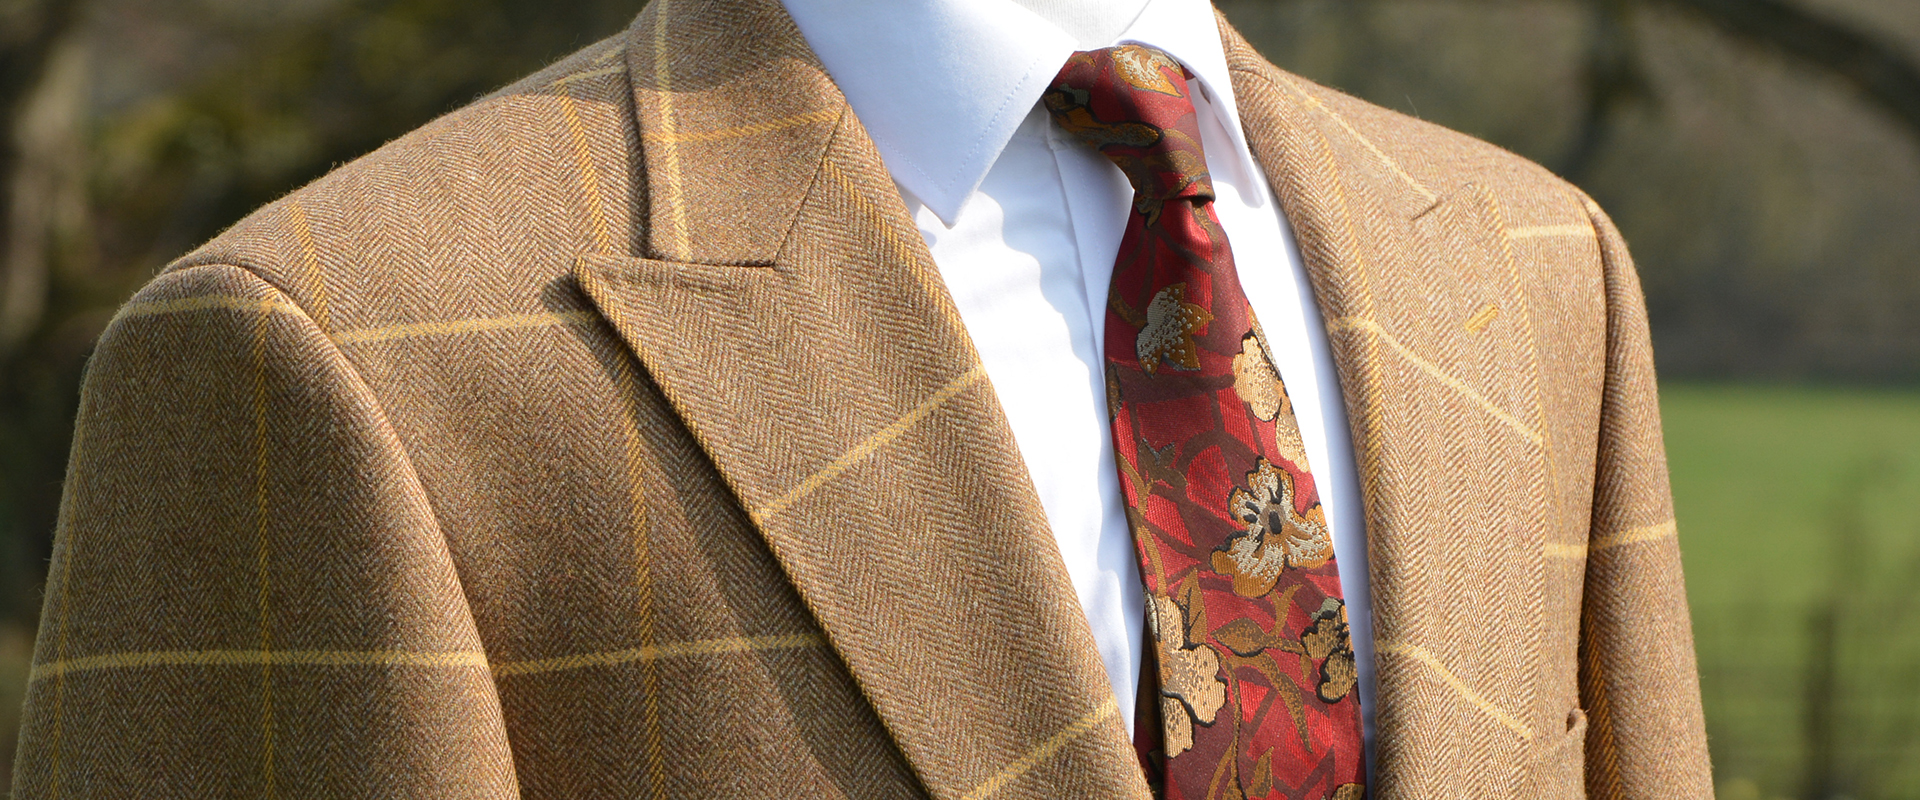 Custom Tailored Tweed Jackets and Suits